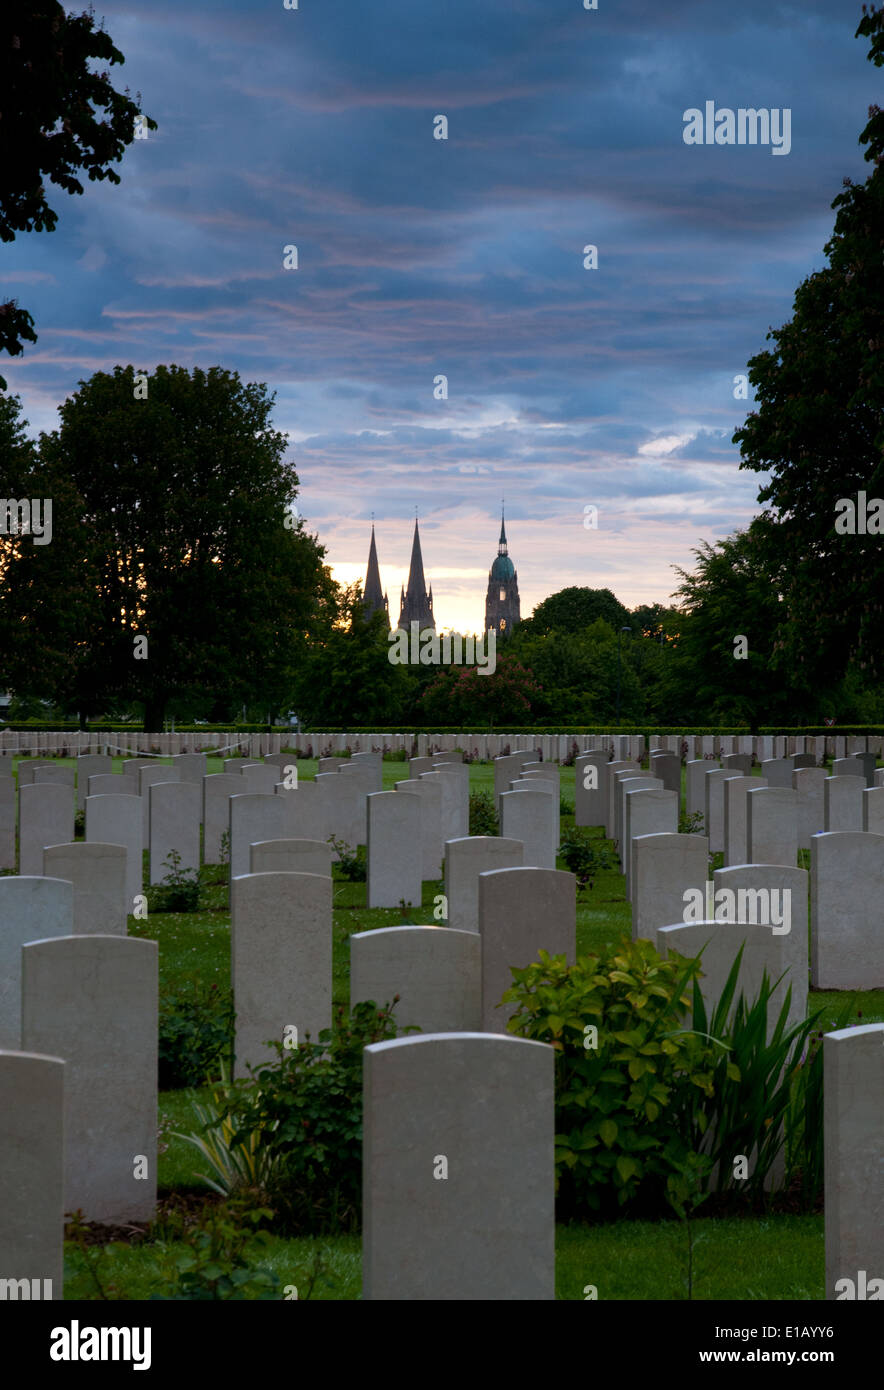 Bayeux British cemetery with graves of soldiers killed in Normandy invasion Stock Photo